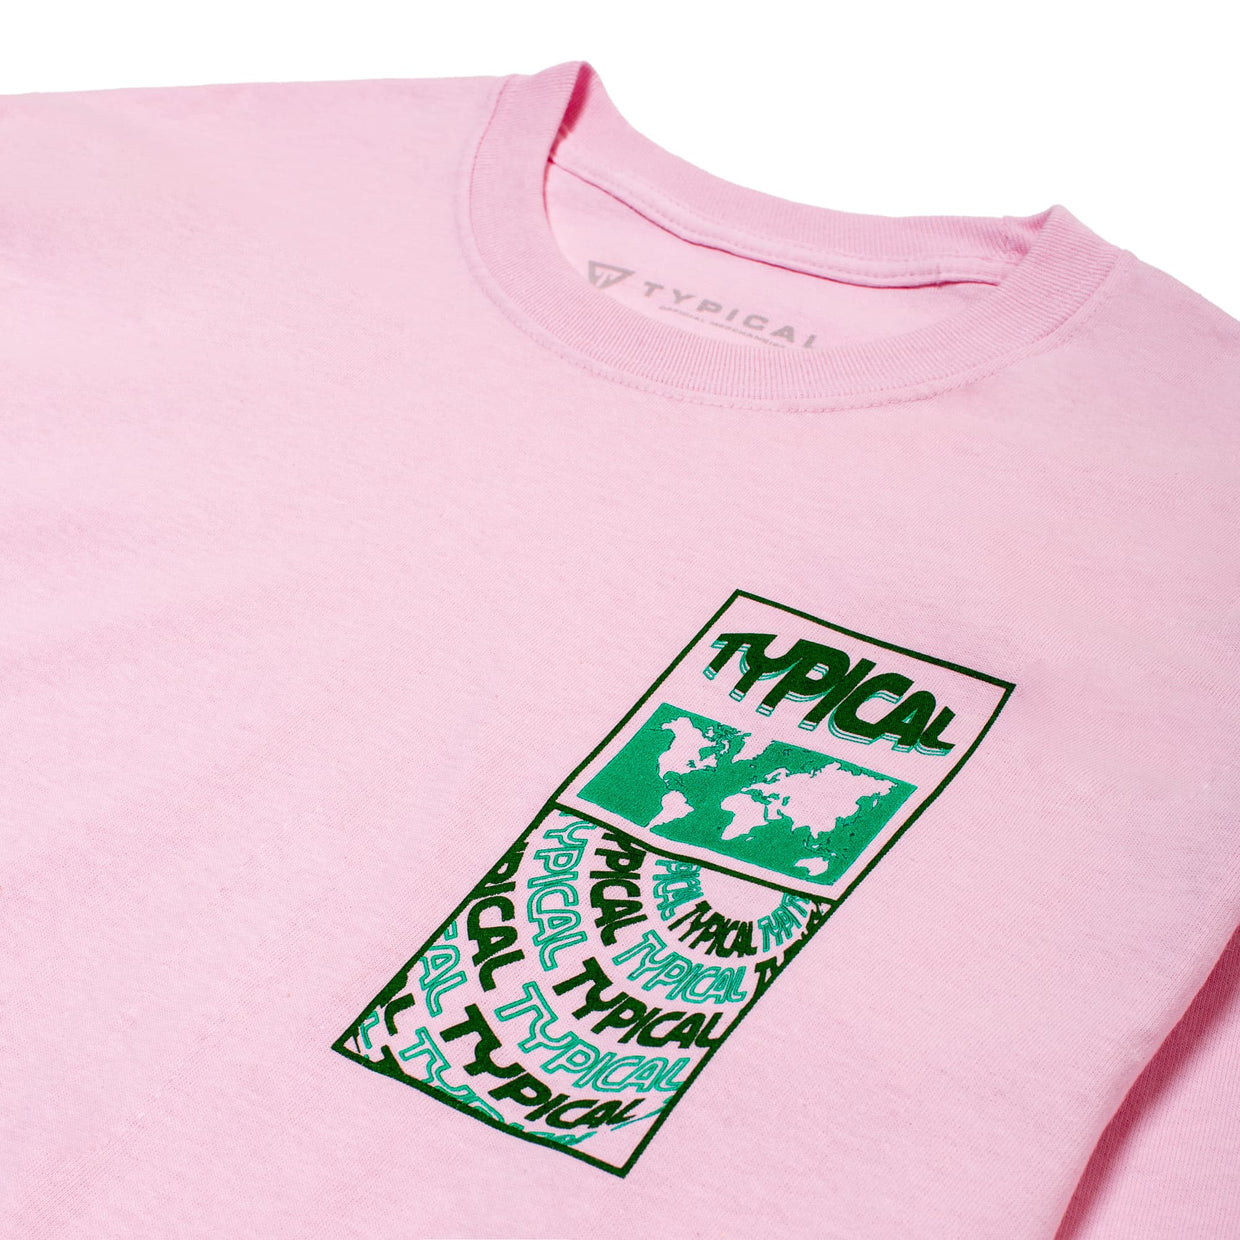 Typical 'Worldwide' Long Sleeve Tee